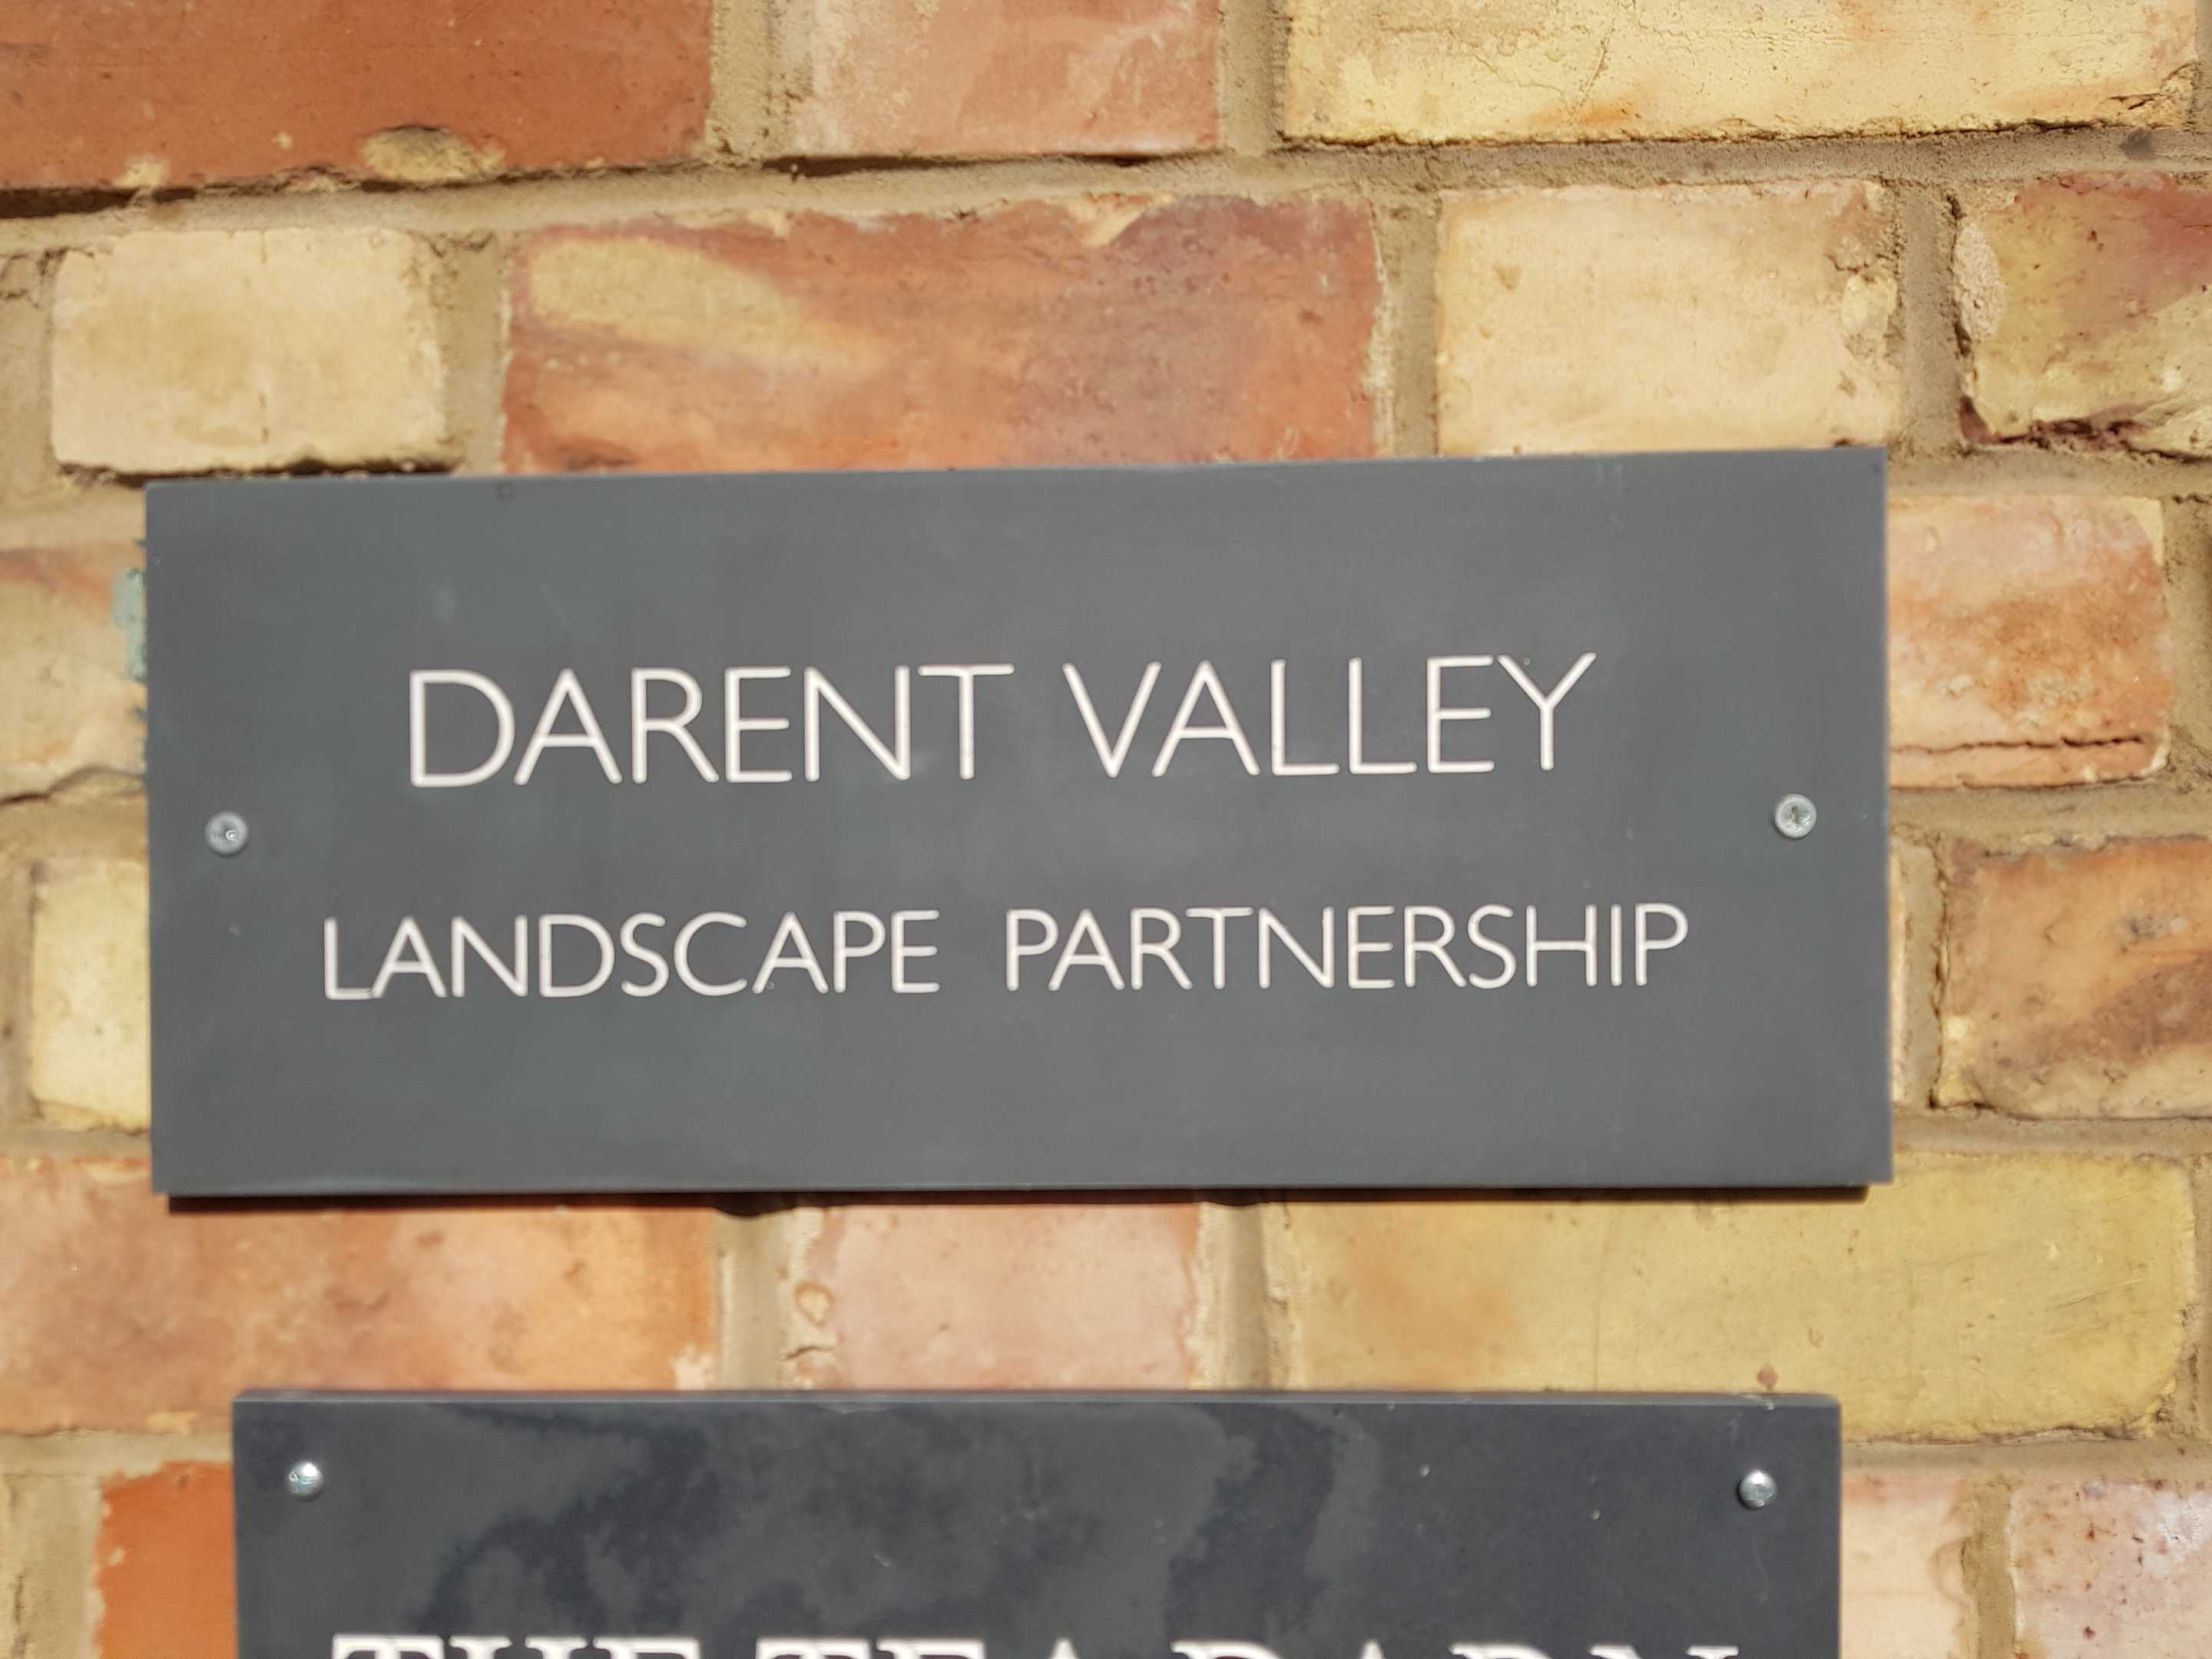 Sign at the Darent Valley Landscape Partnership Offices